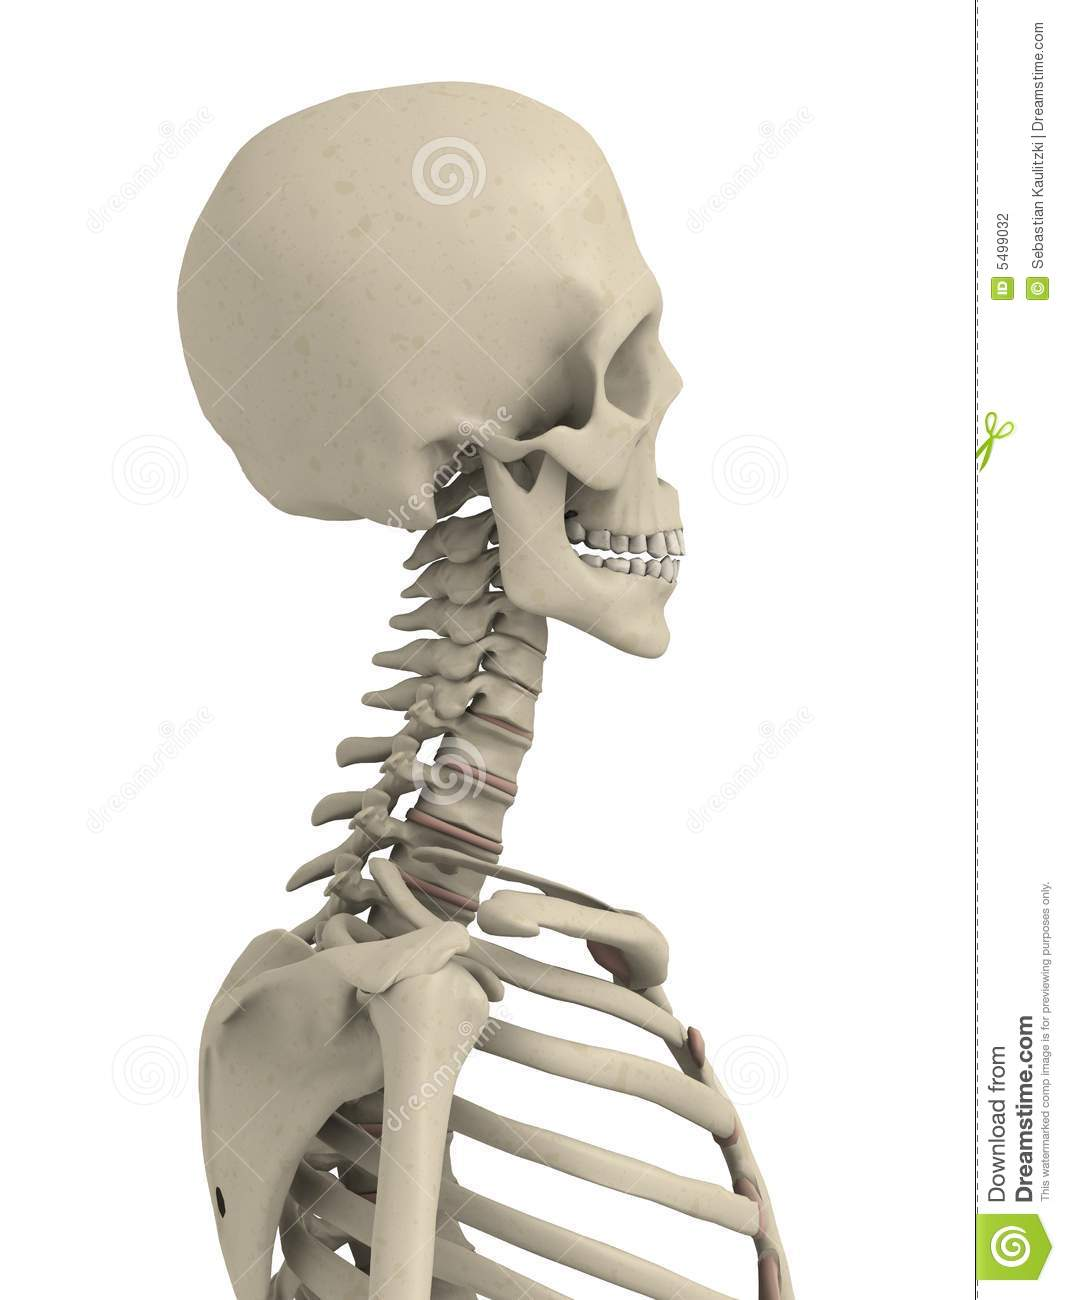 Skeletal neck and scull stock illustration illustration of skeleton download skeletal neck and scull stock illustration illustration of skeleton 5499032 ccuart Image collections